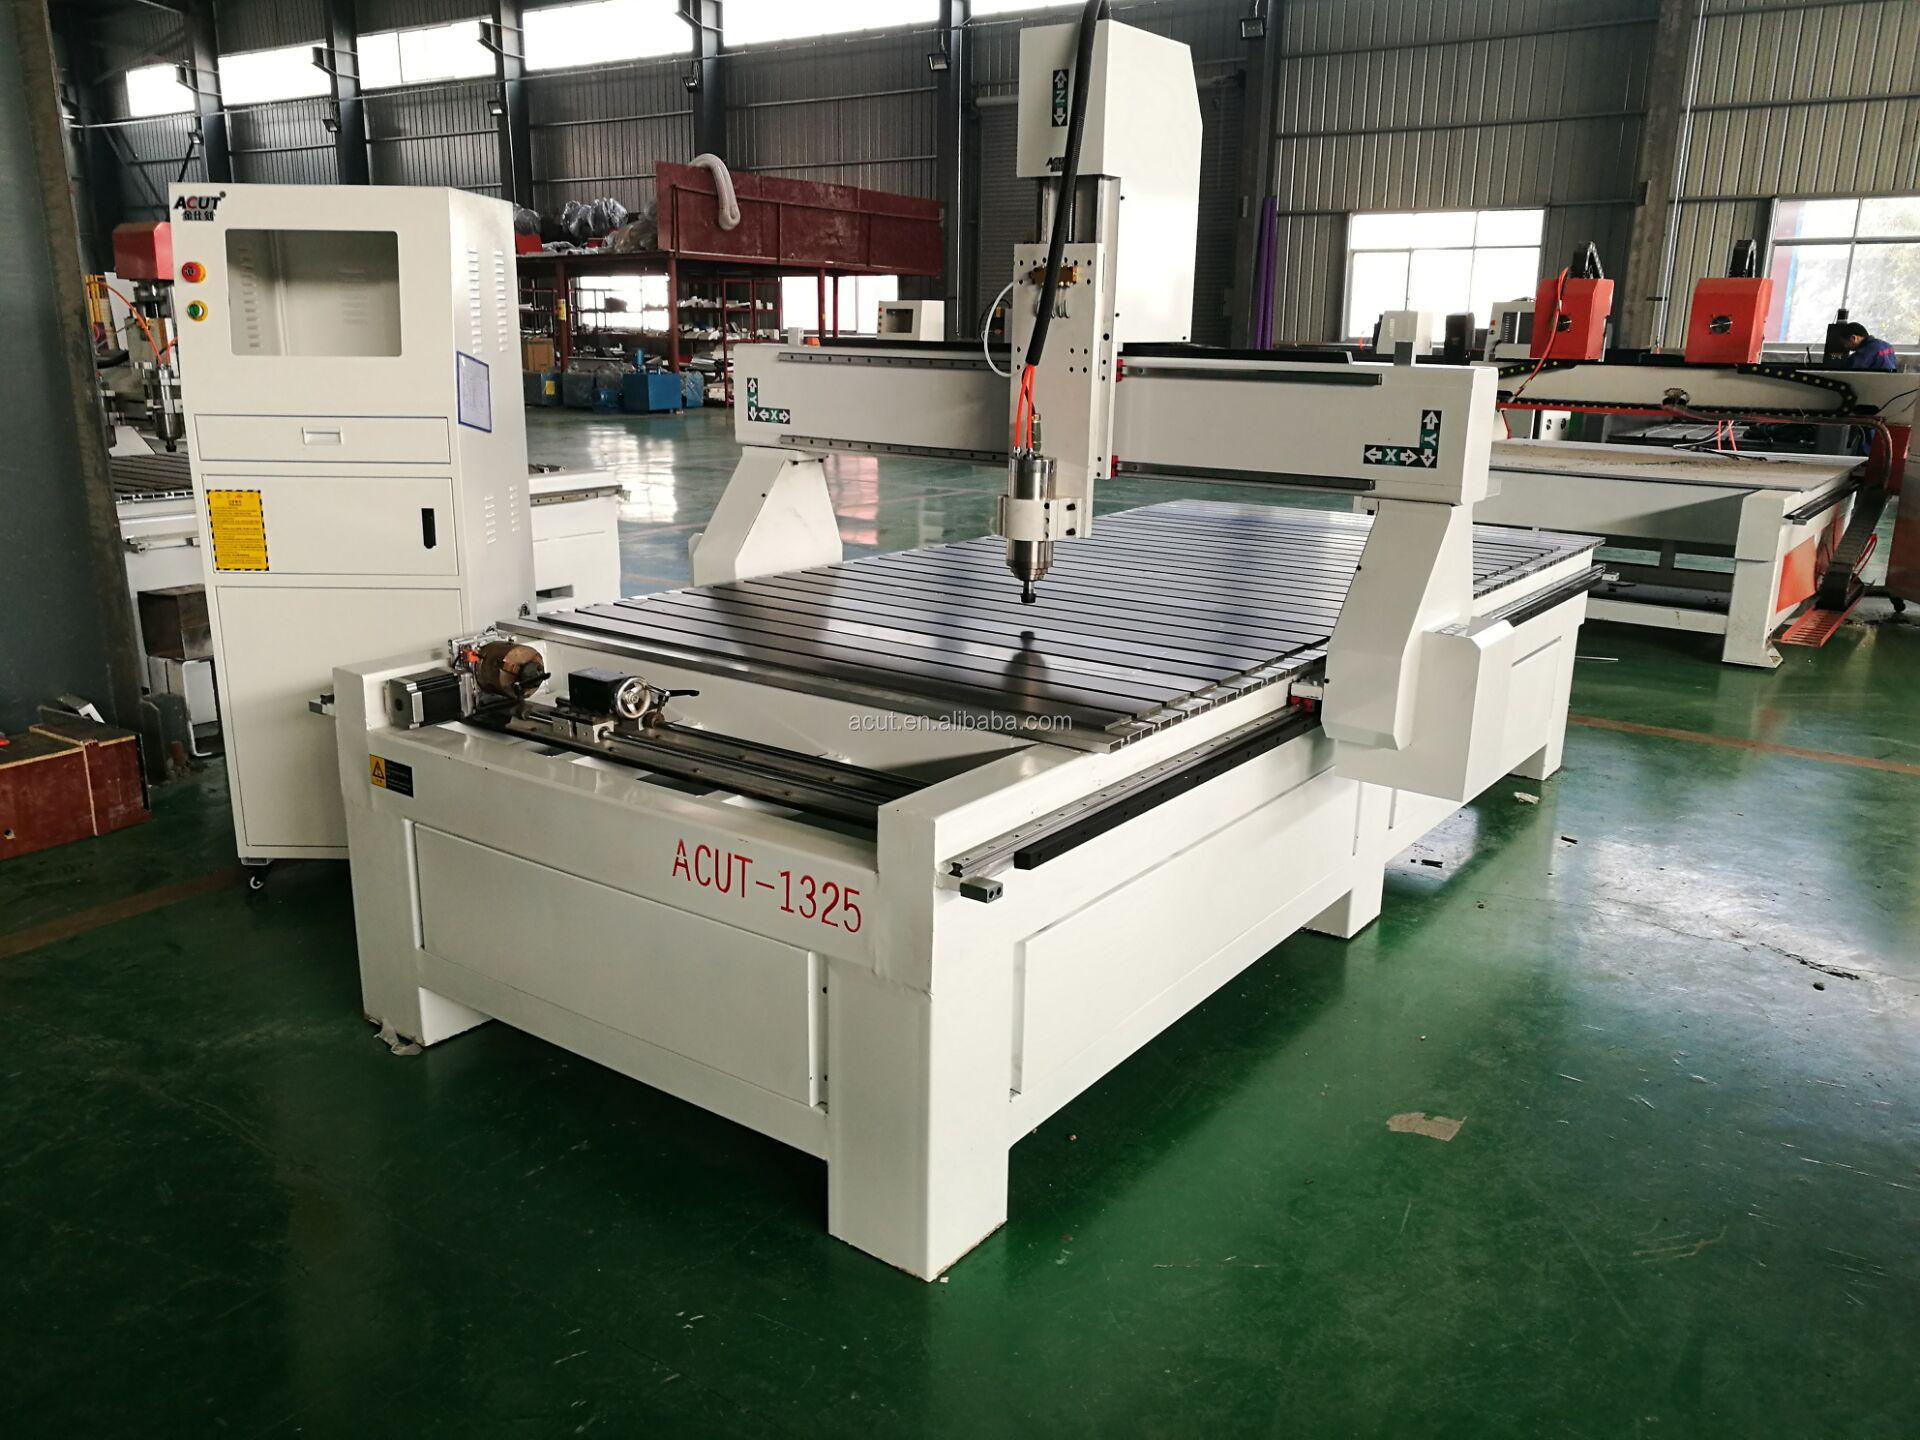 CNC Machine with 3D Rotary Attachement (Dia.: 400mm, Length: 2500mm)